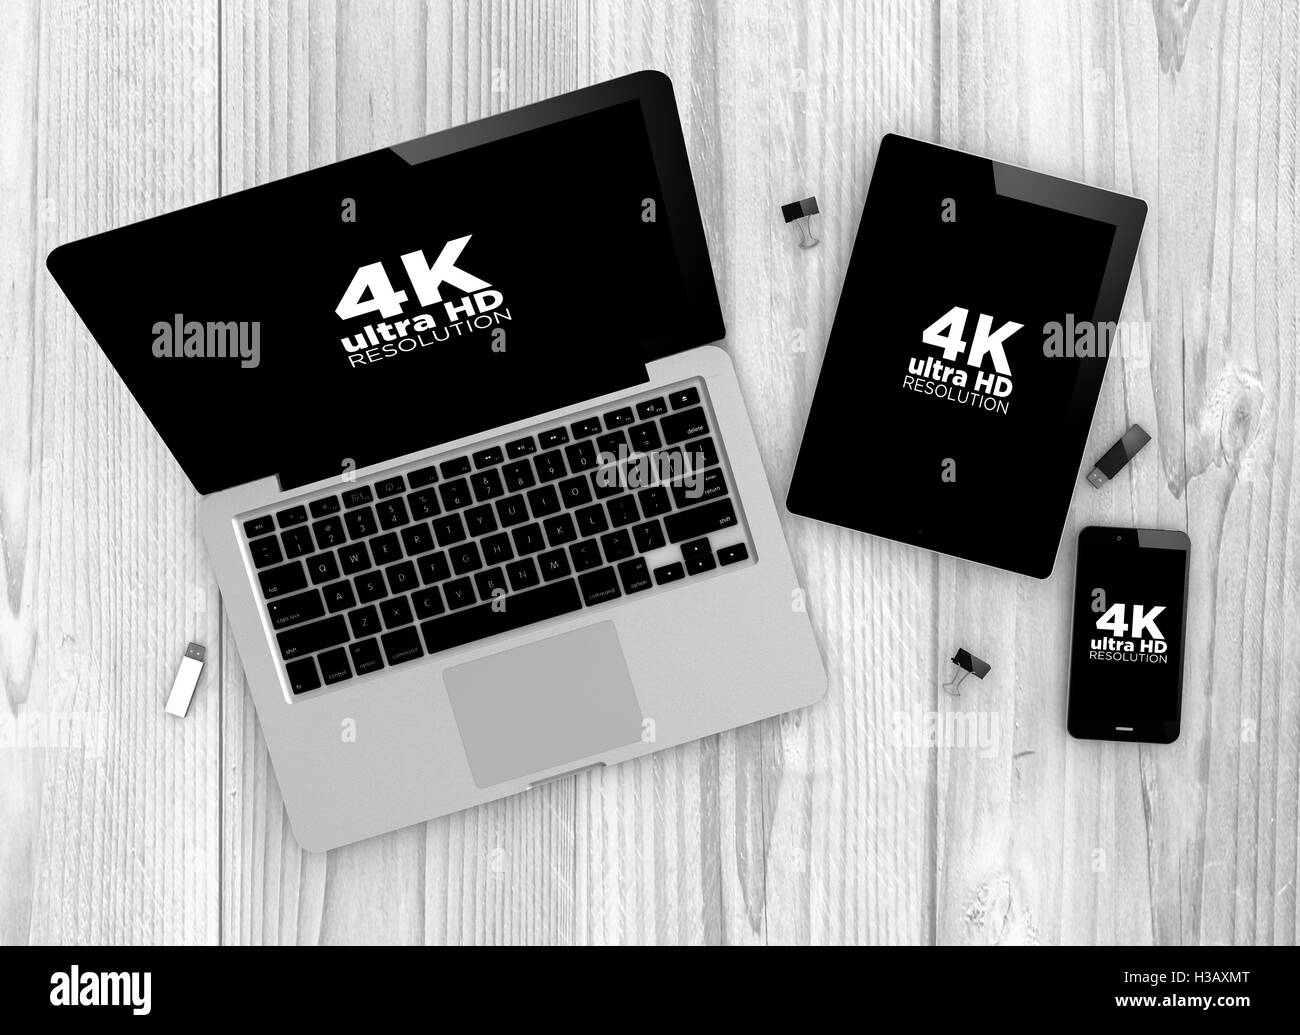 Technology concept: Devices witn 4k Ultra HD resolutions screens. All graphics are made up. - Stock Image